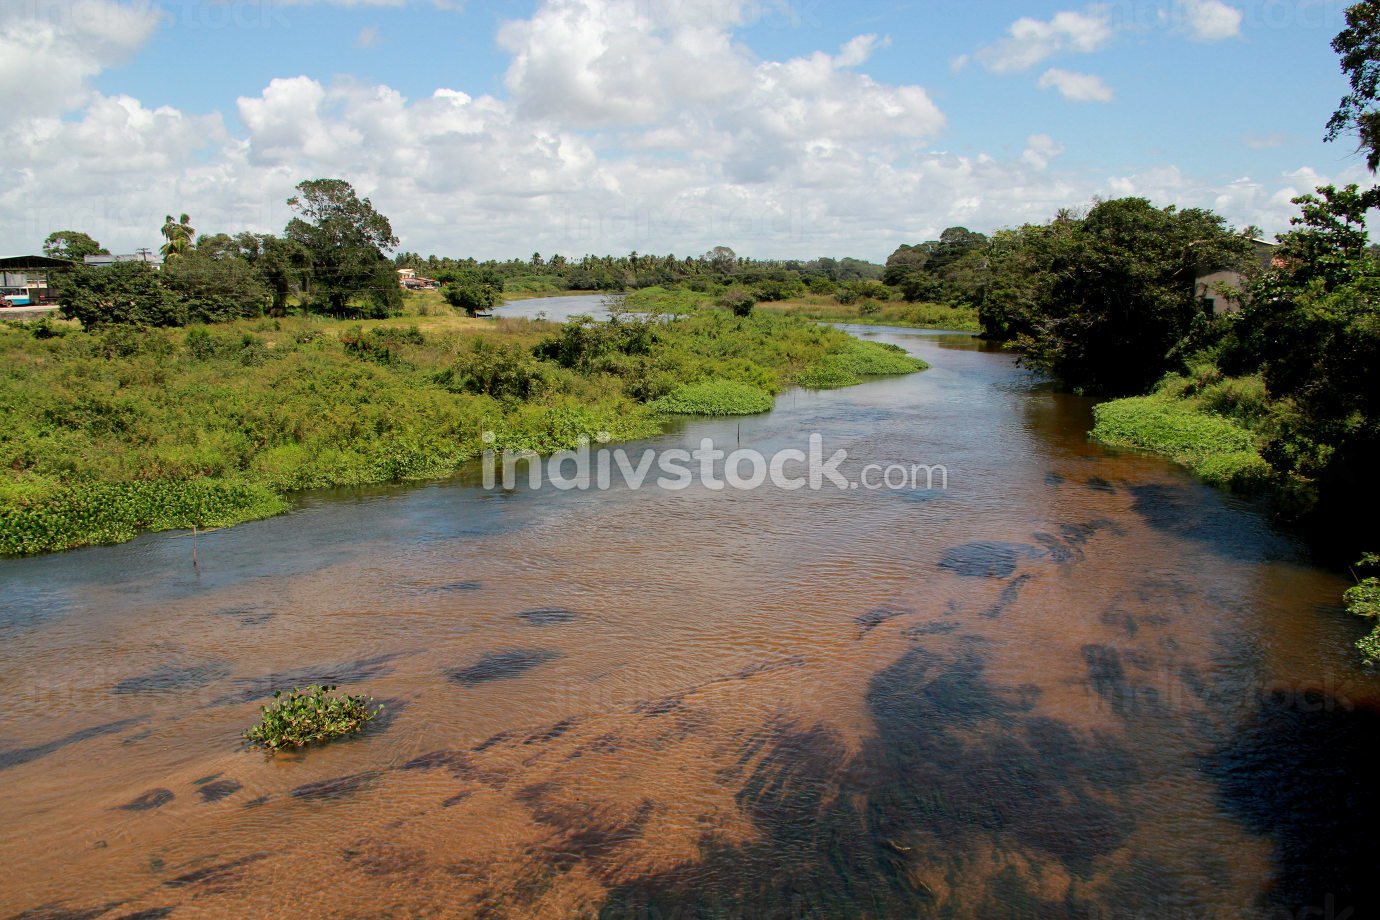 conde, bahia Brazil, september 7, 2012, Itapicuru River bed